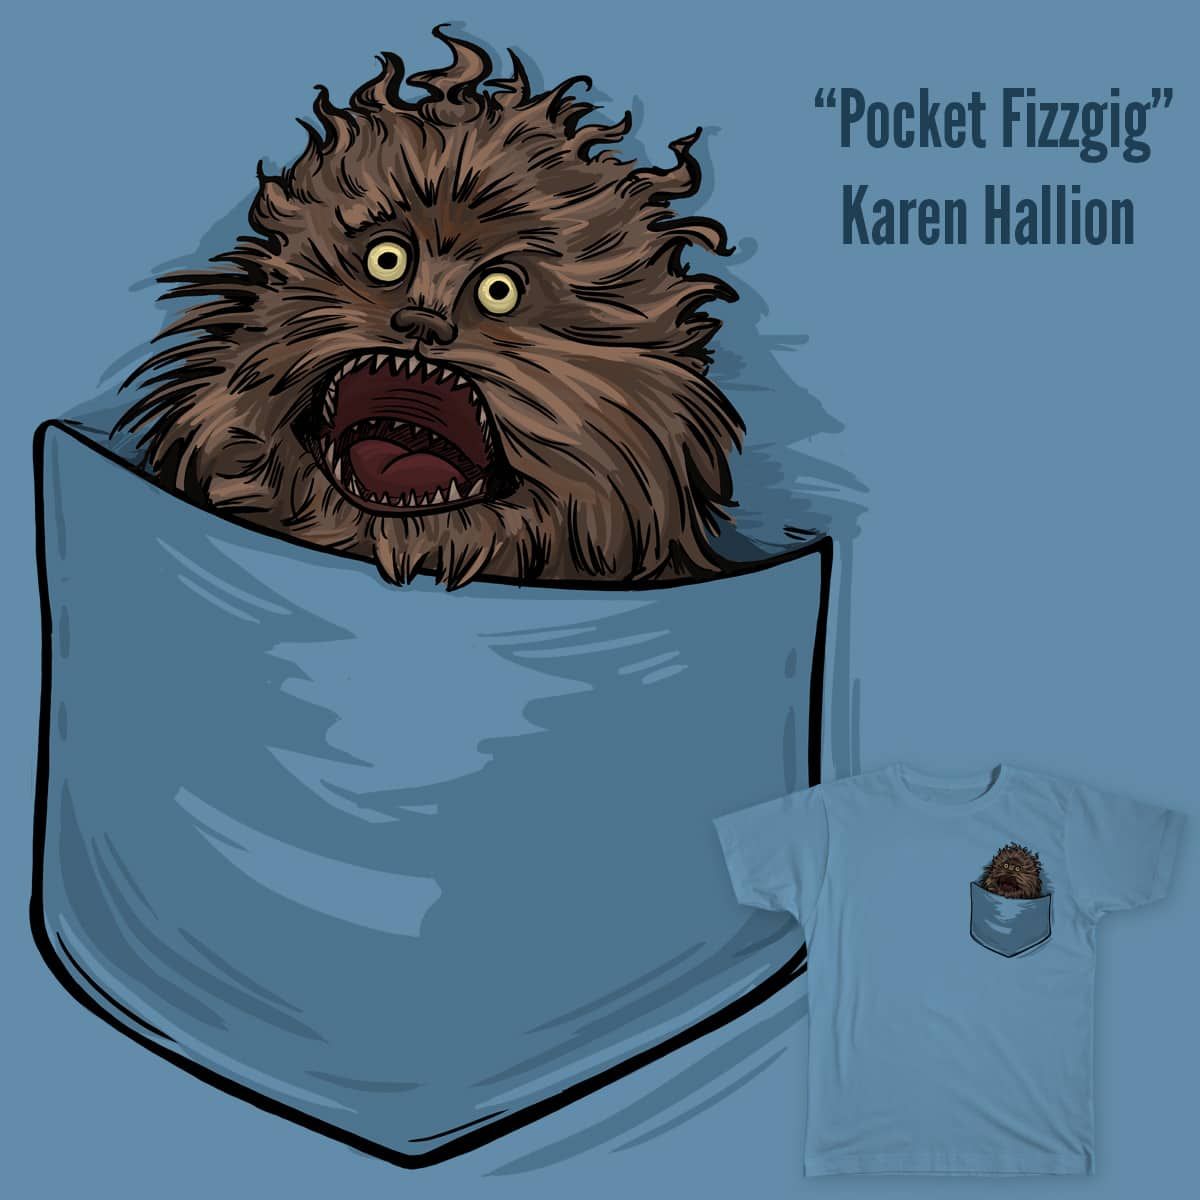 Pocket Fizzgig by khallion on Threadless